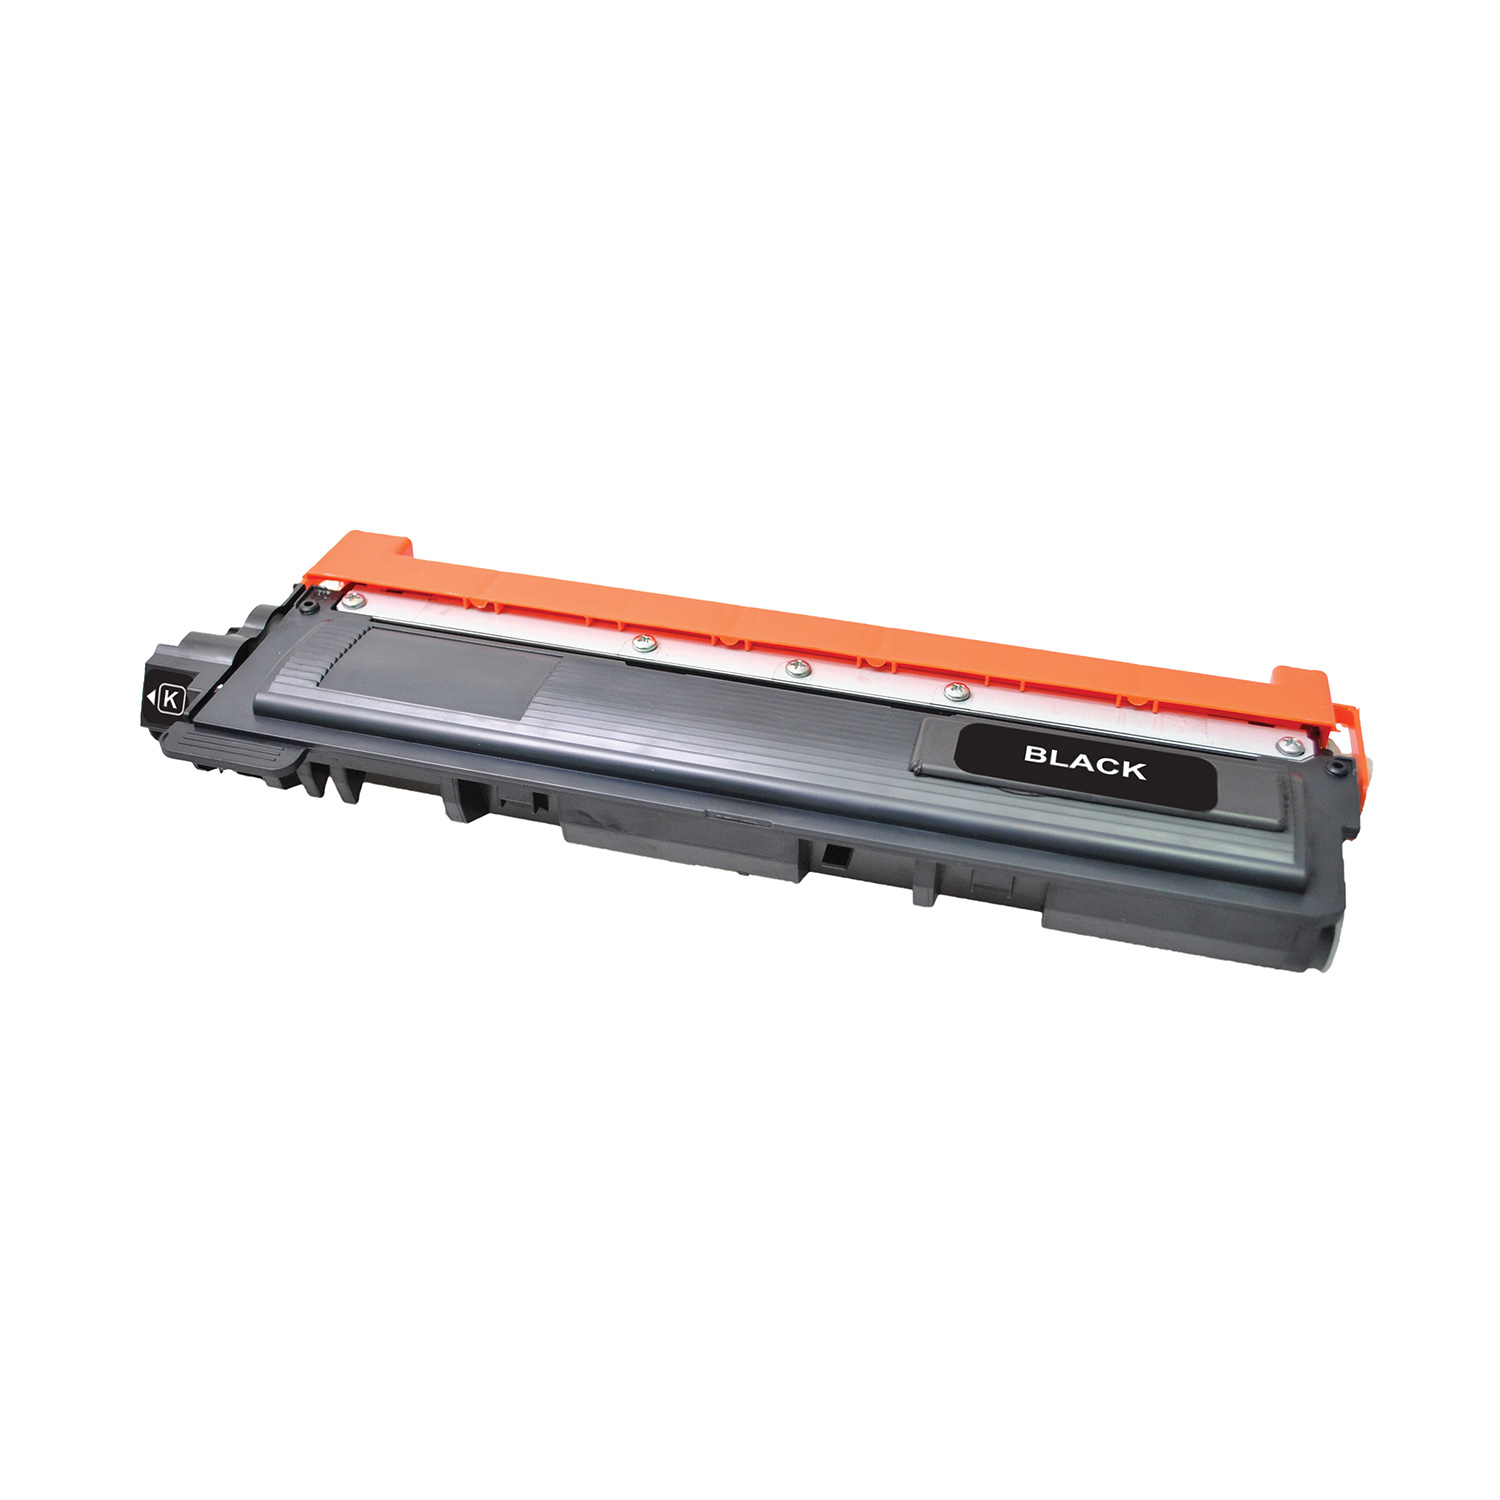 V7 Laser Toner for select BROTHER printer - replaces TN230BK